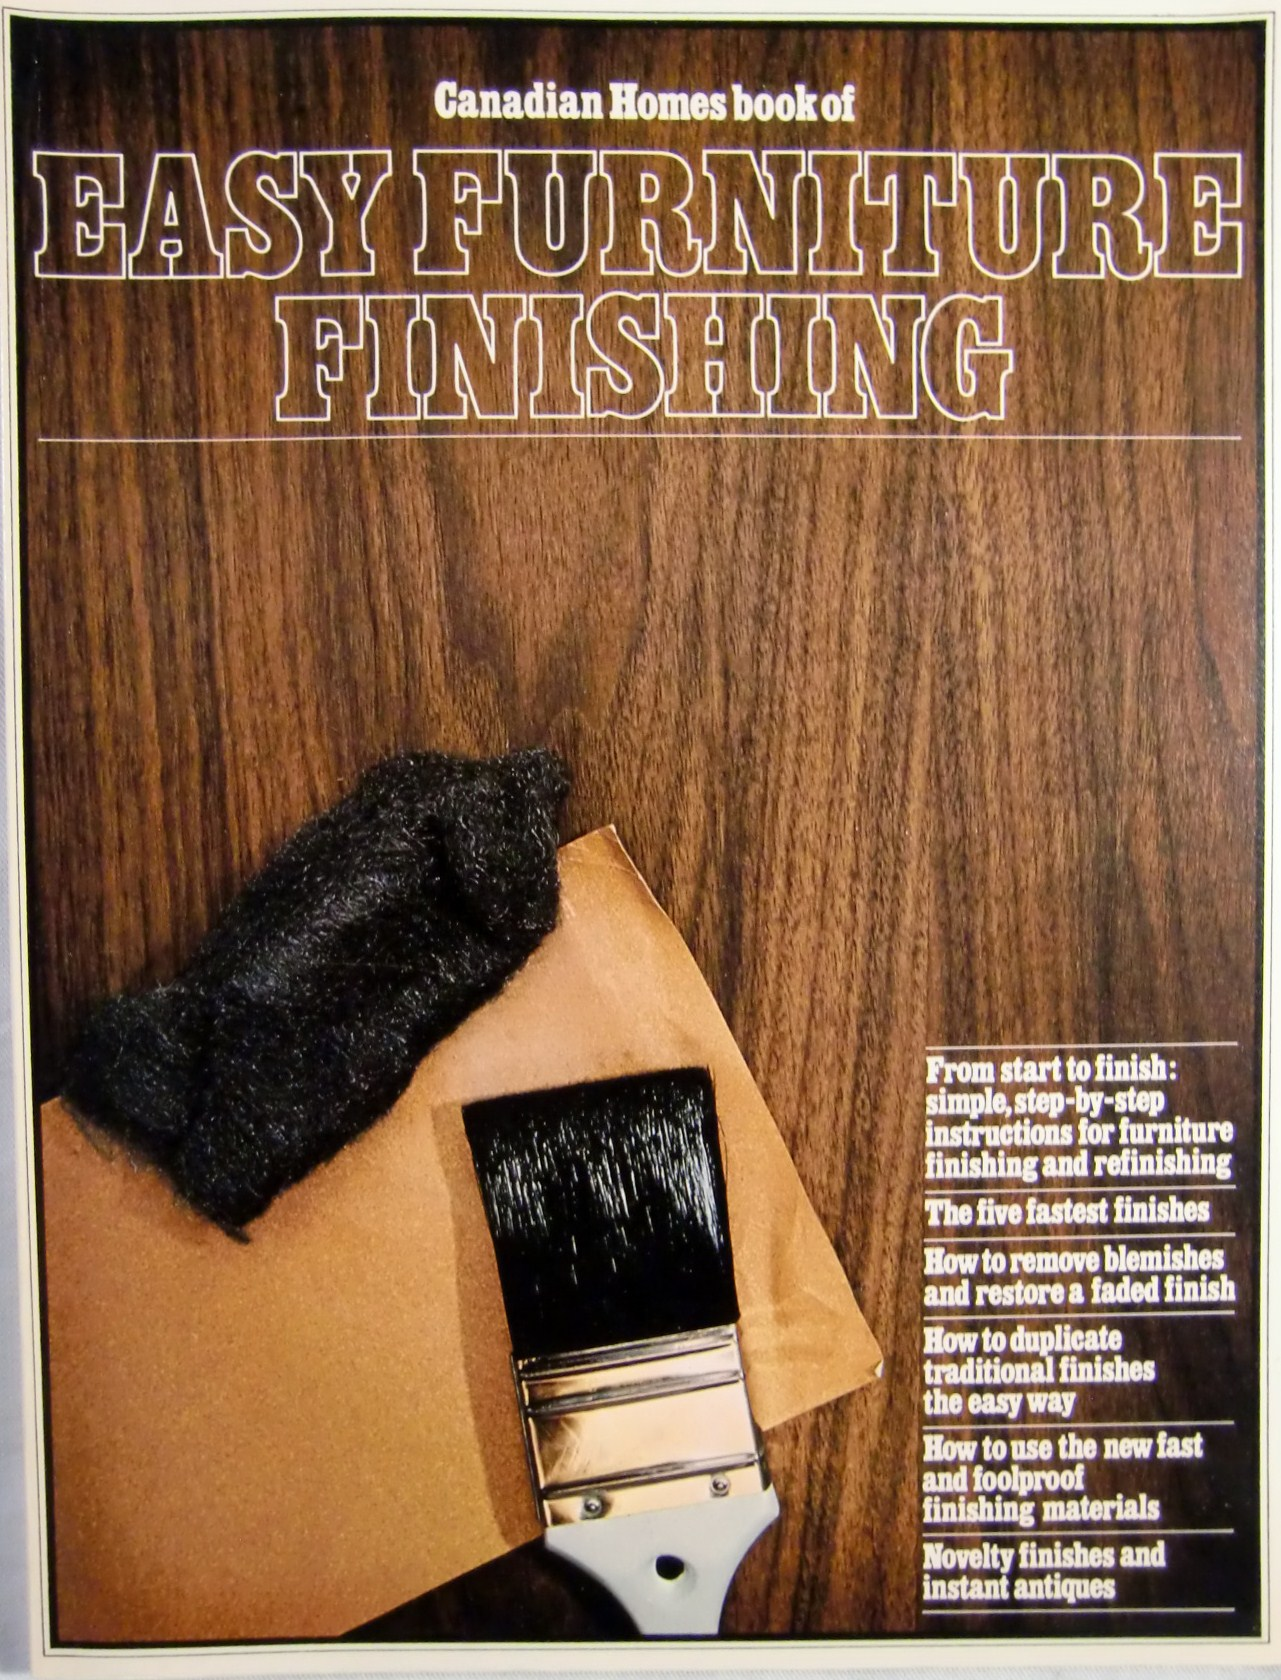 Canadian Homes book of Easy Furniture Finishing